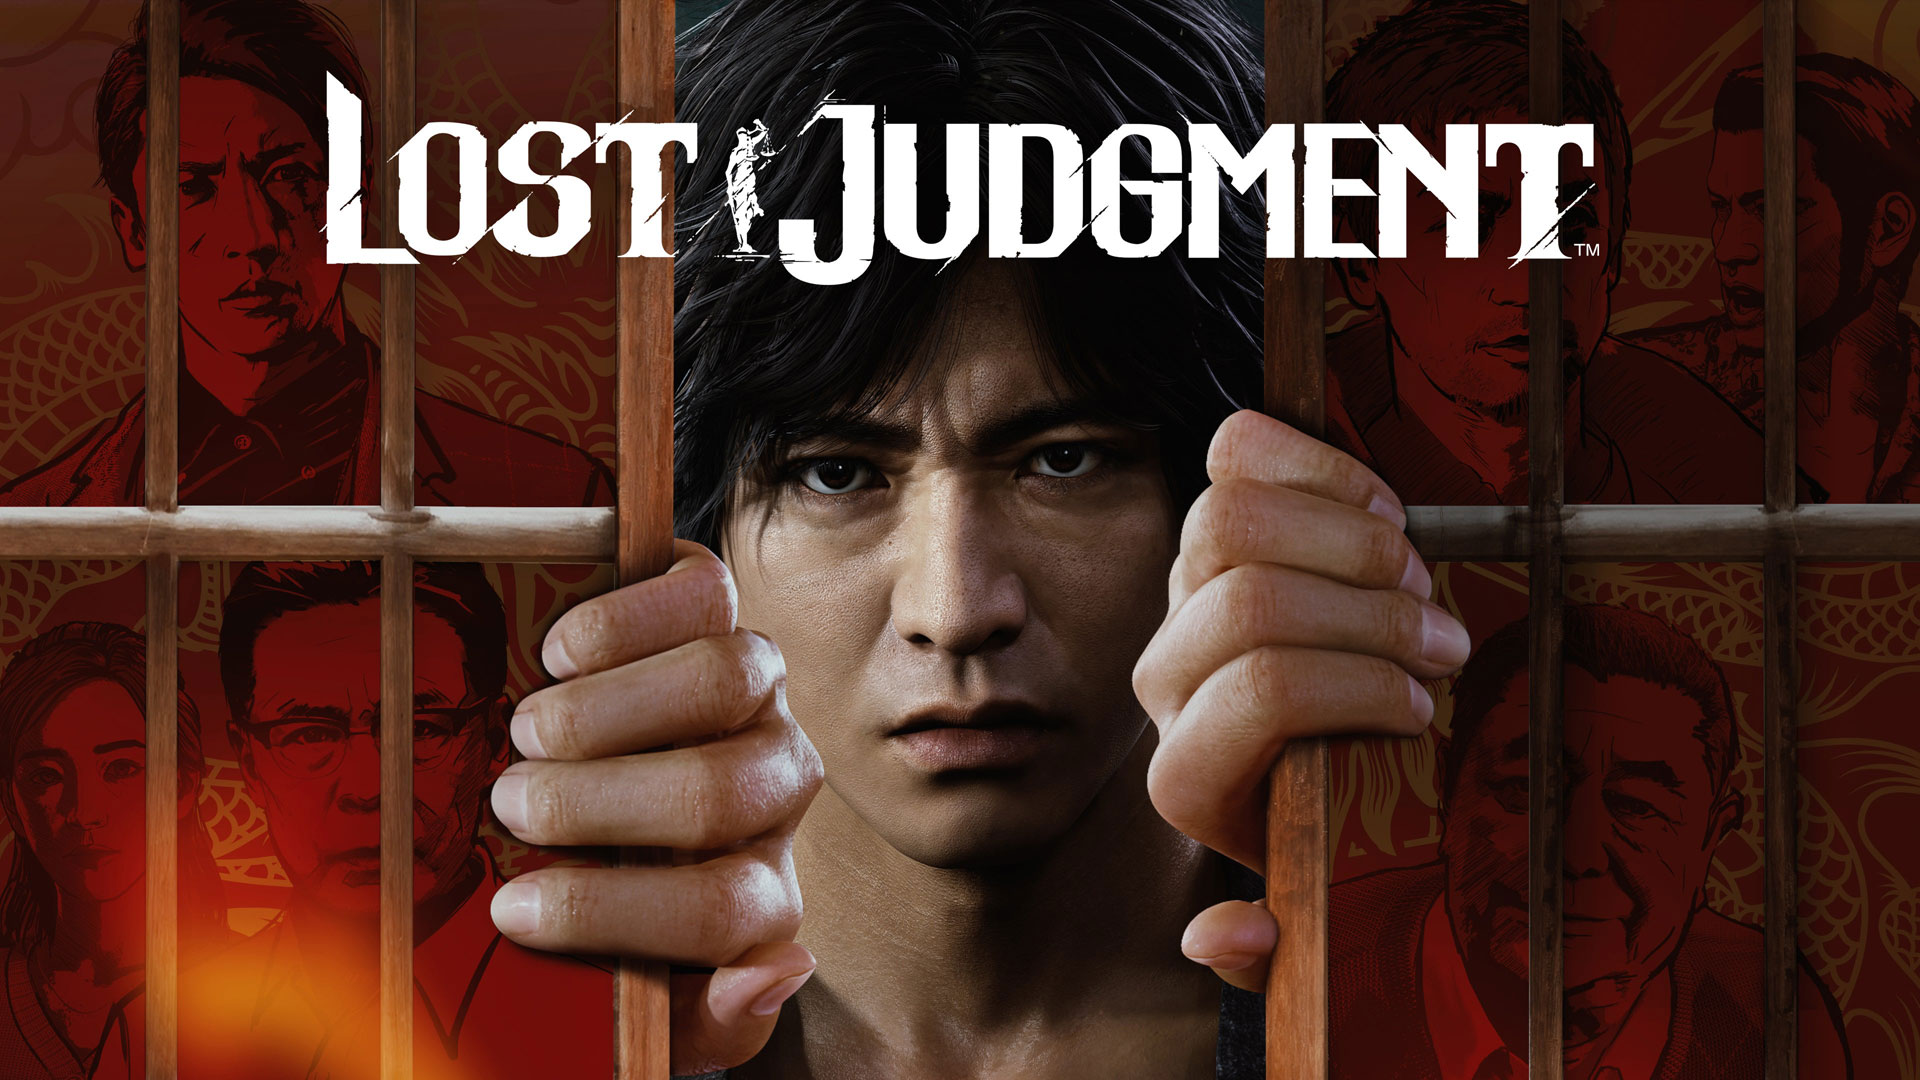 Free Lost Judgment Wallpaper in 1920x1080